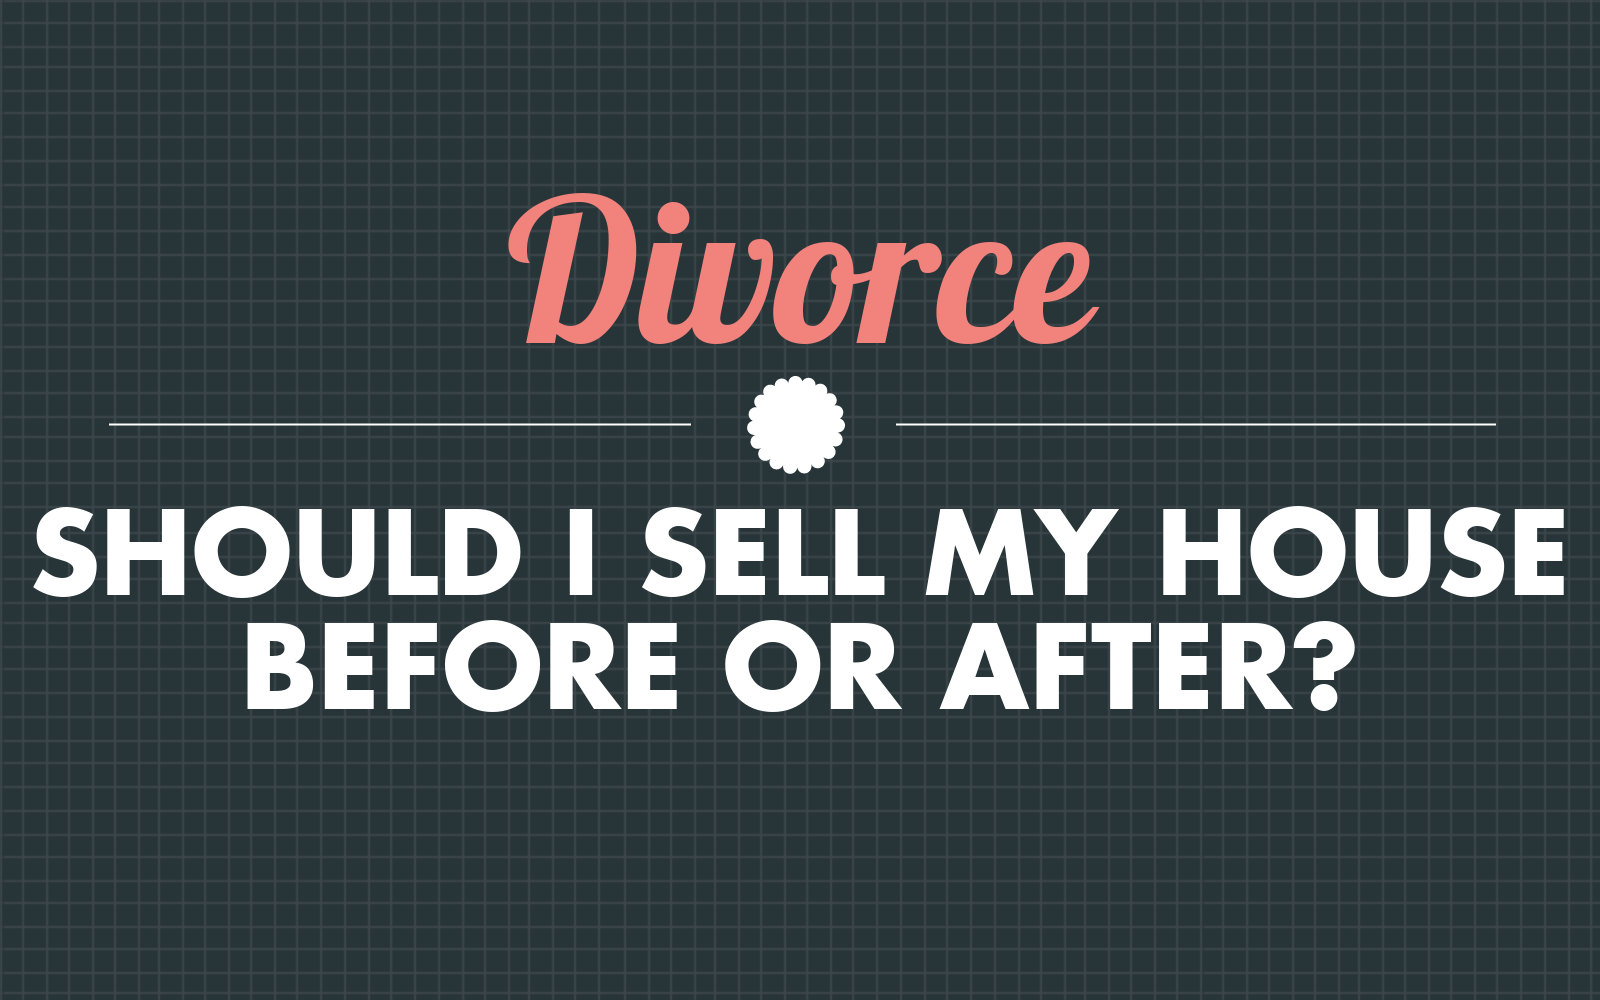 Should i sell my house before or after divorce in the uk